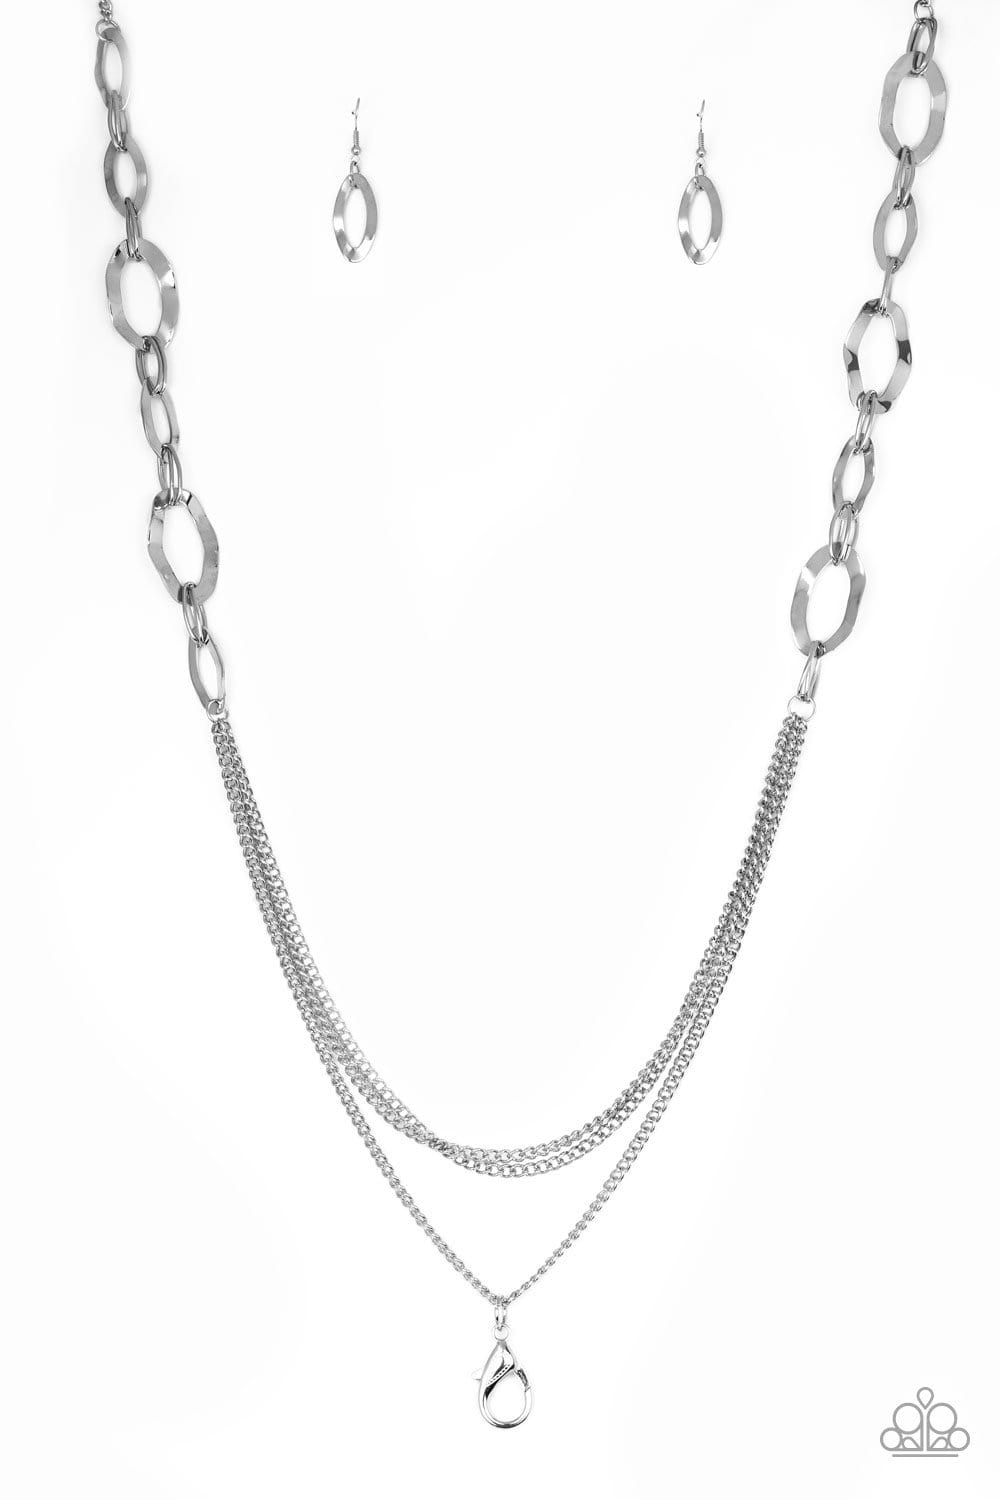 Paparazzi: Street Beat - Silver Chain Necklace